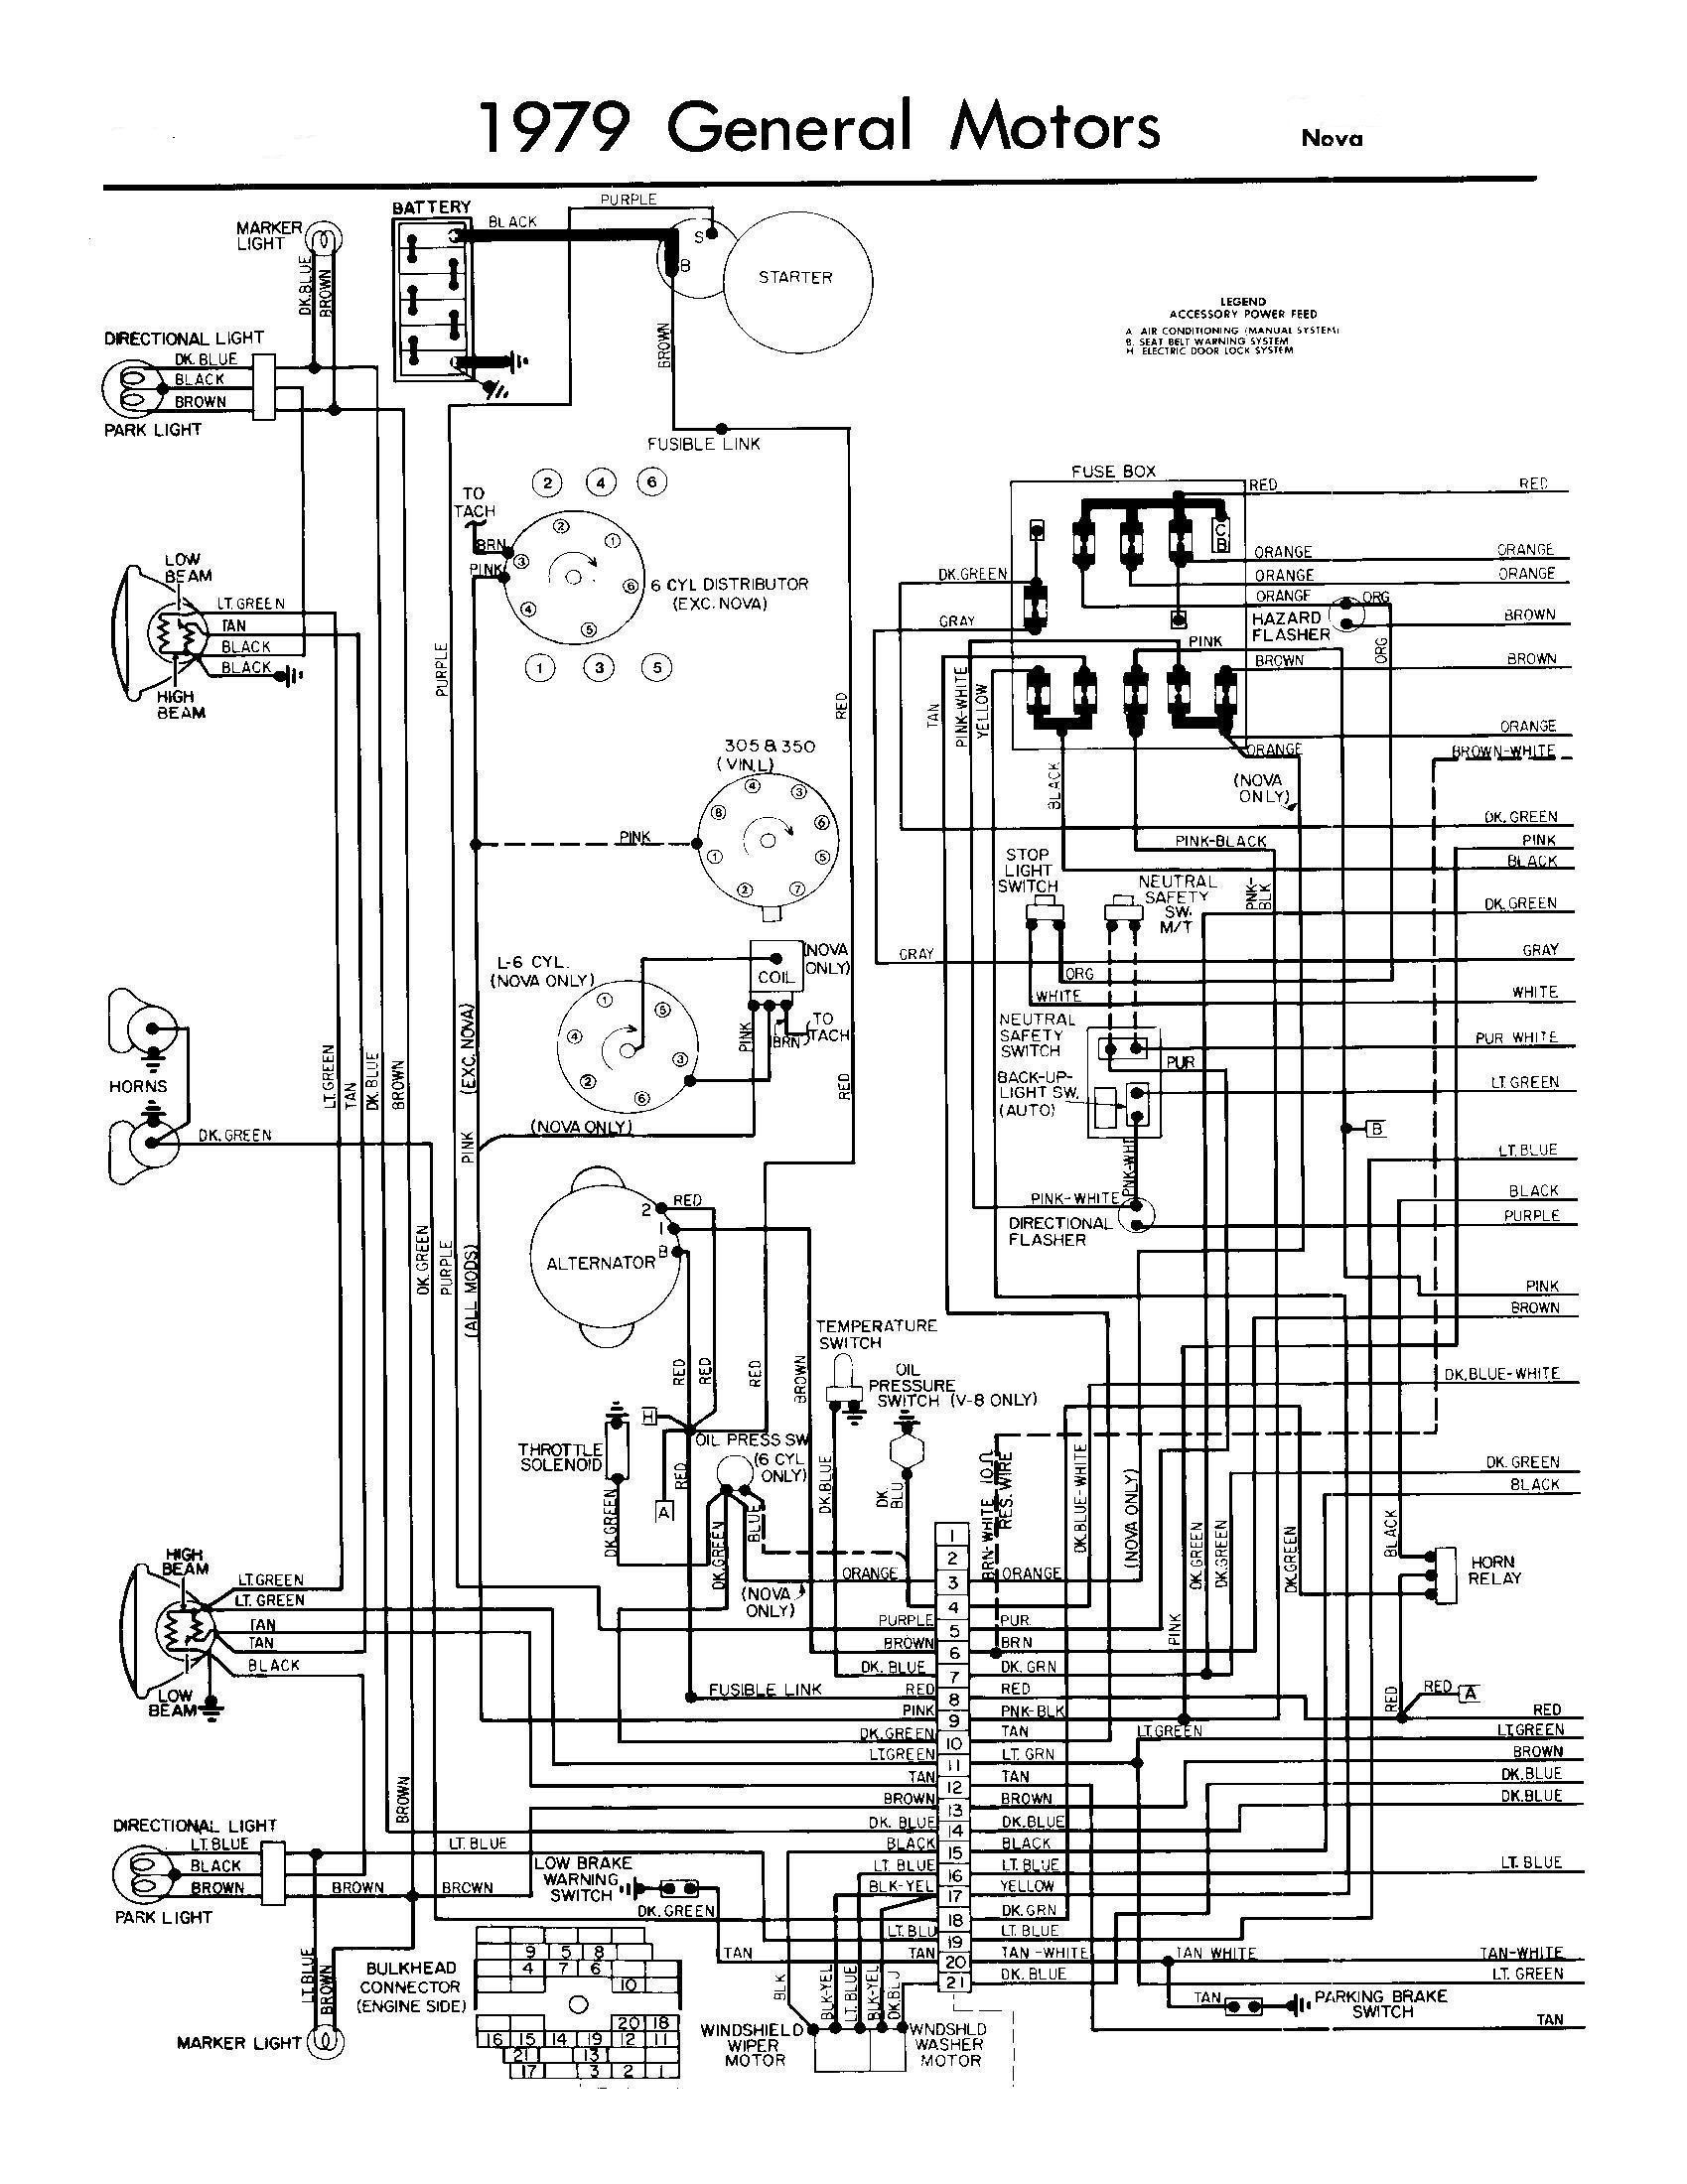 2002 Jeep Wrangler Tj Wiring Diagram Lzk Gallery - WIRE Center •